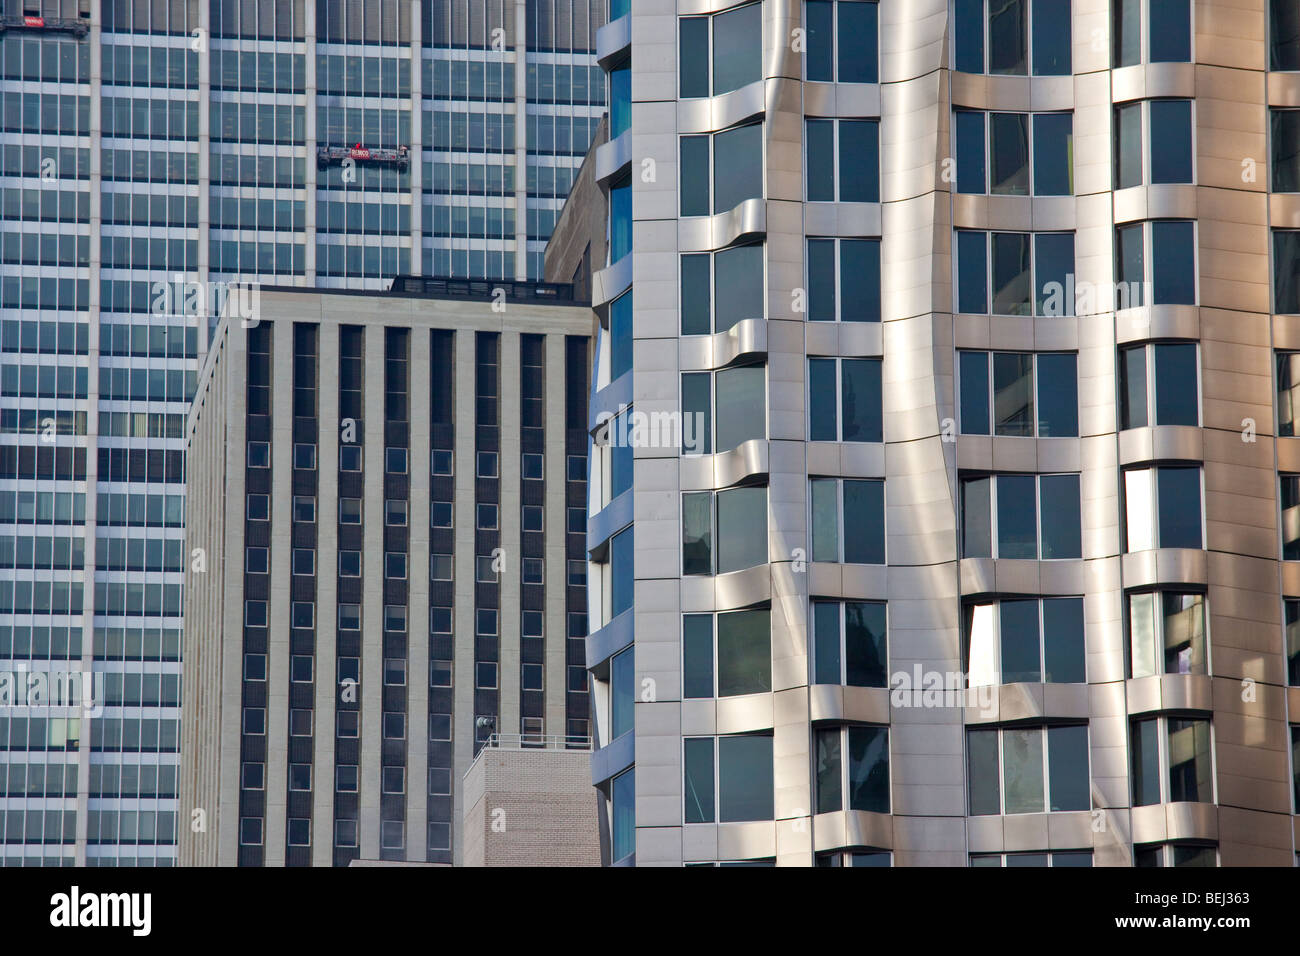 Beekman Tower Frank Gehry Apartment Building in Manhattan New York City - Stock Image